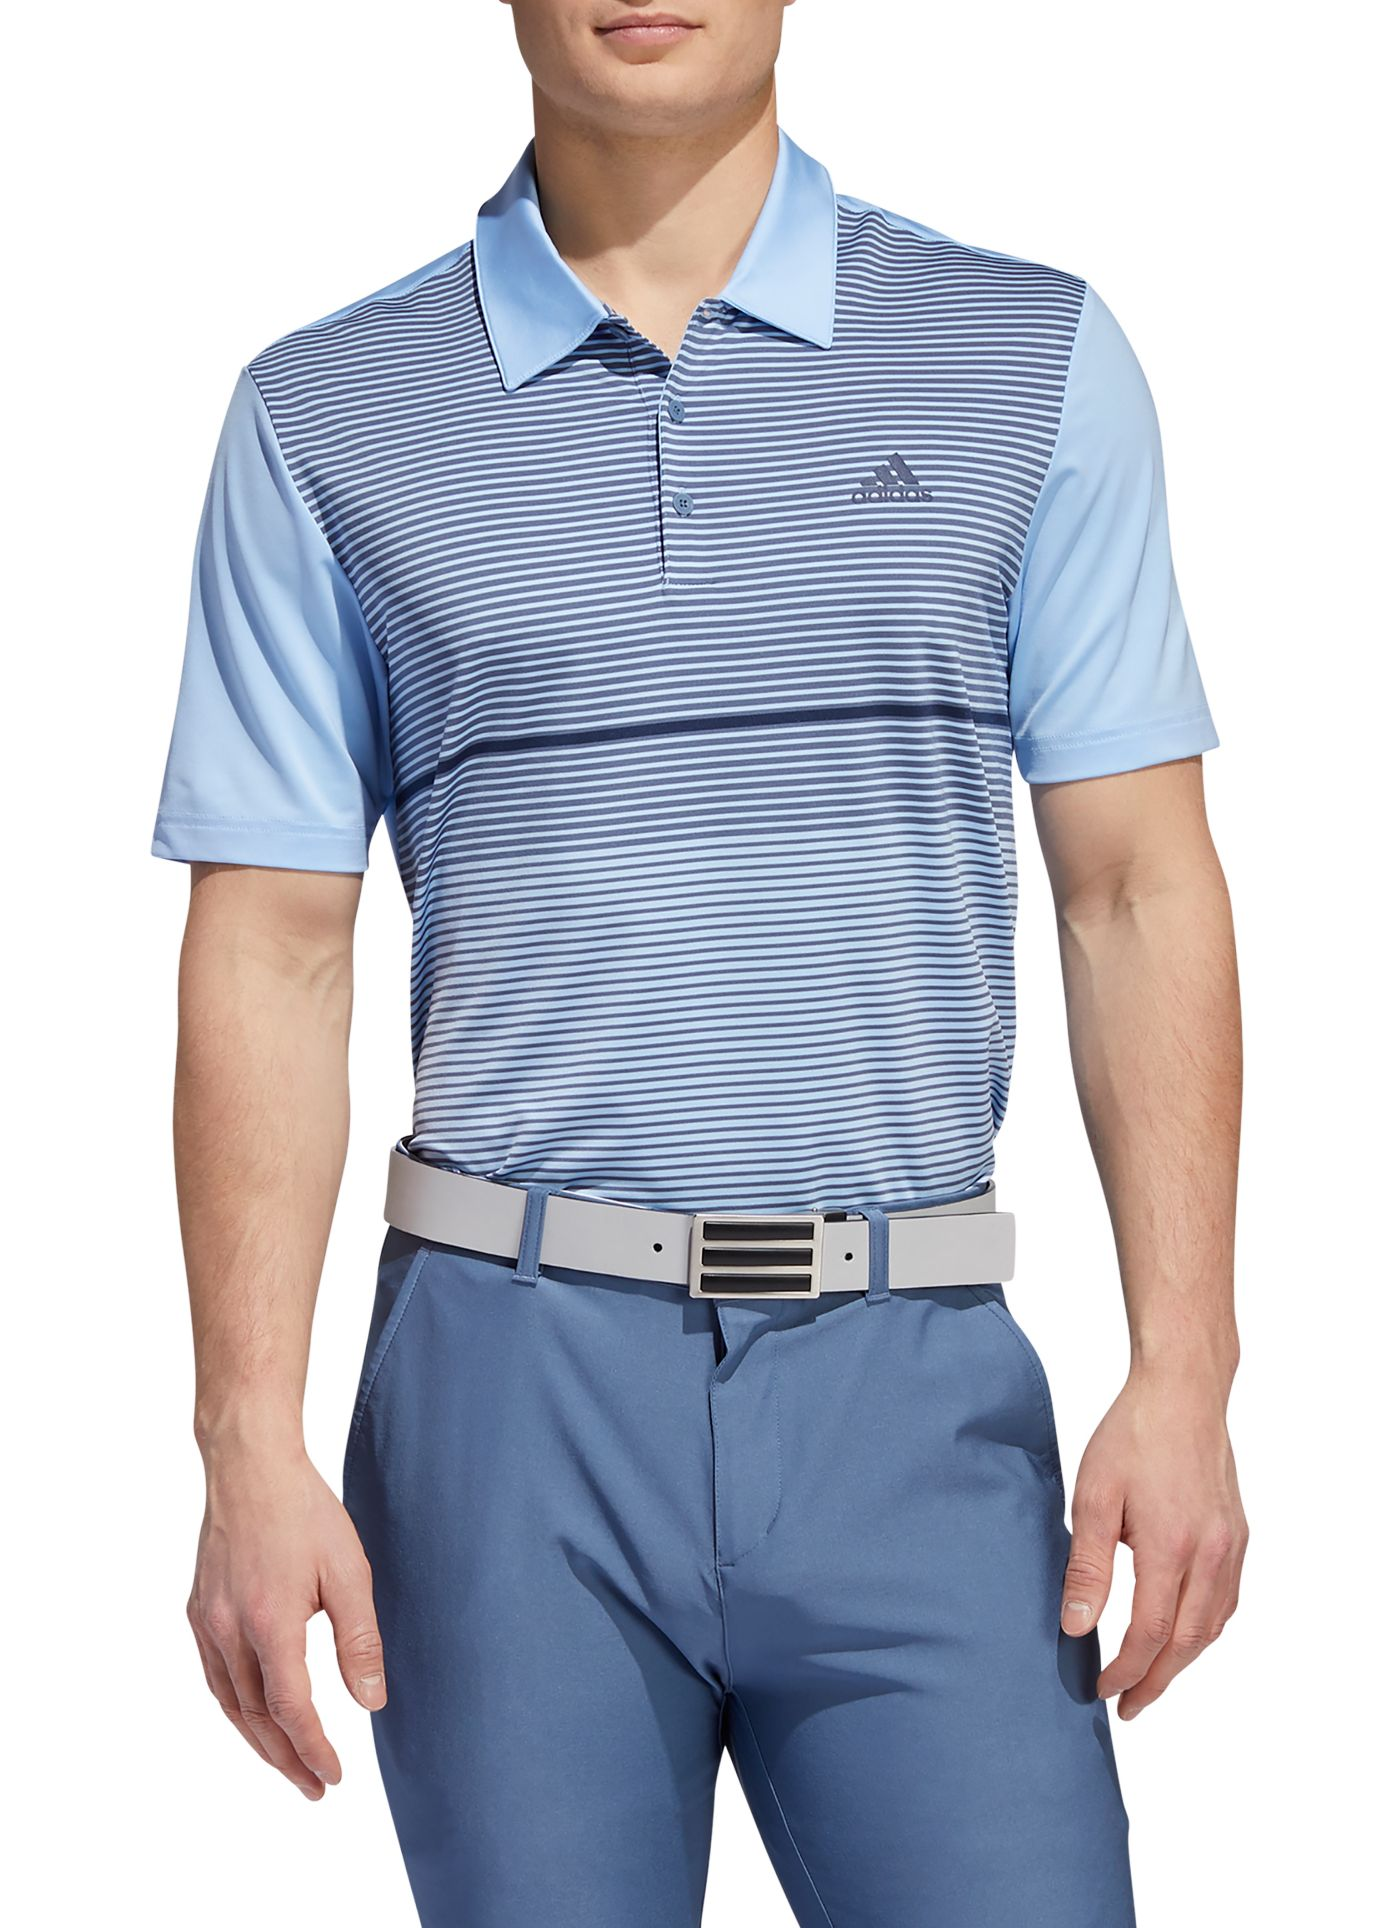 adidas Men's Ultimate365 Striped Colorblock Golf Polo